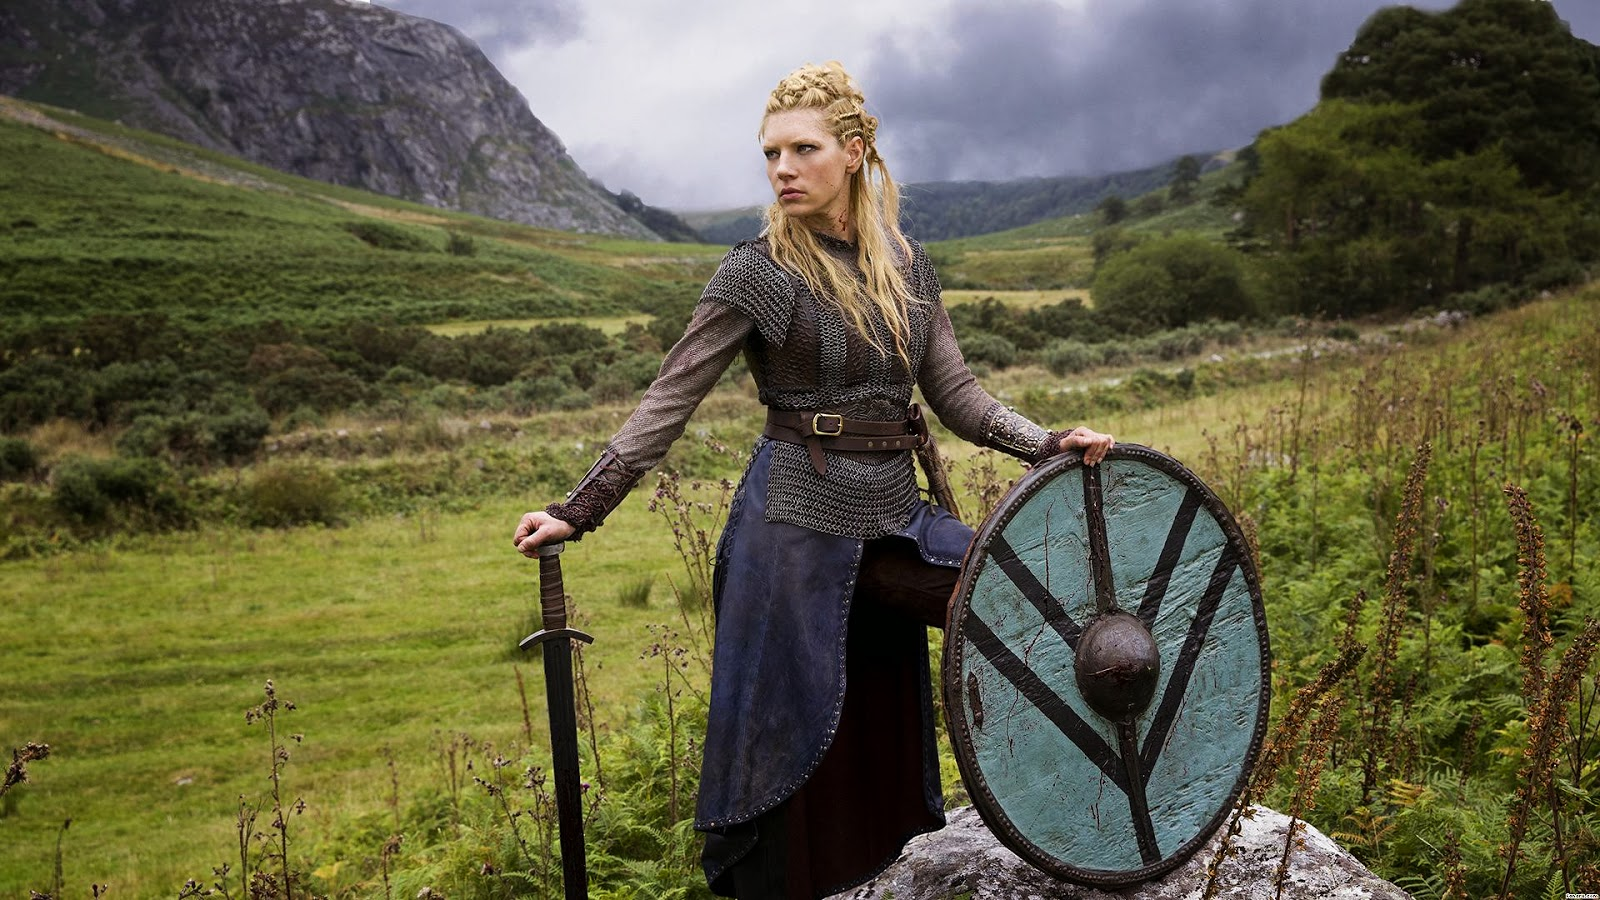 Sheildmaidens Were Real! New Findings Show 1/2 of Viking ...